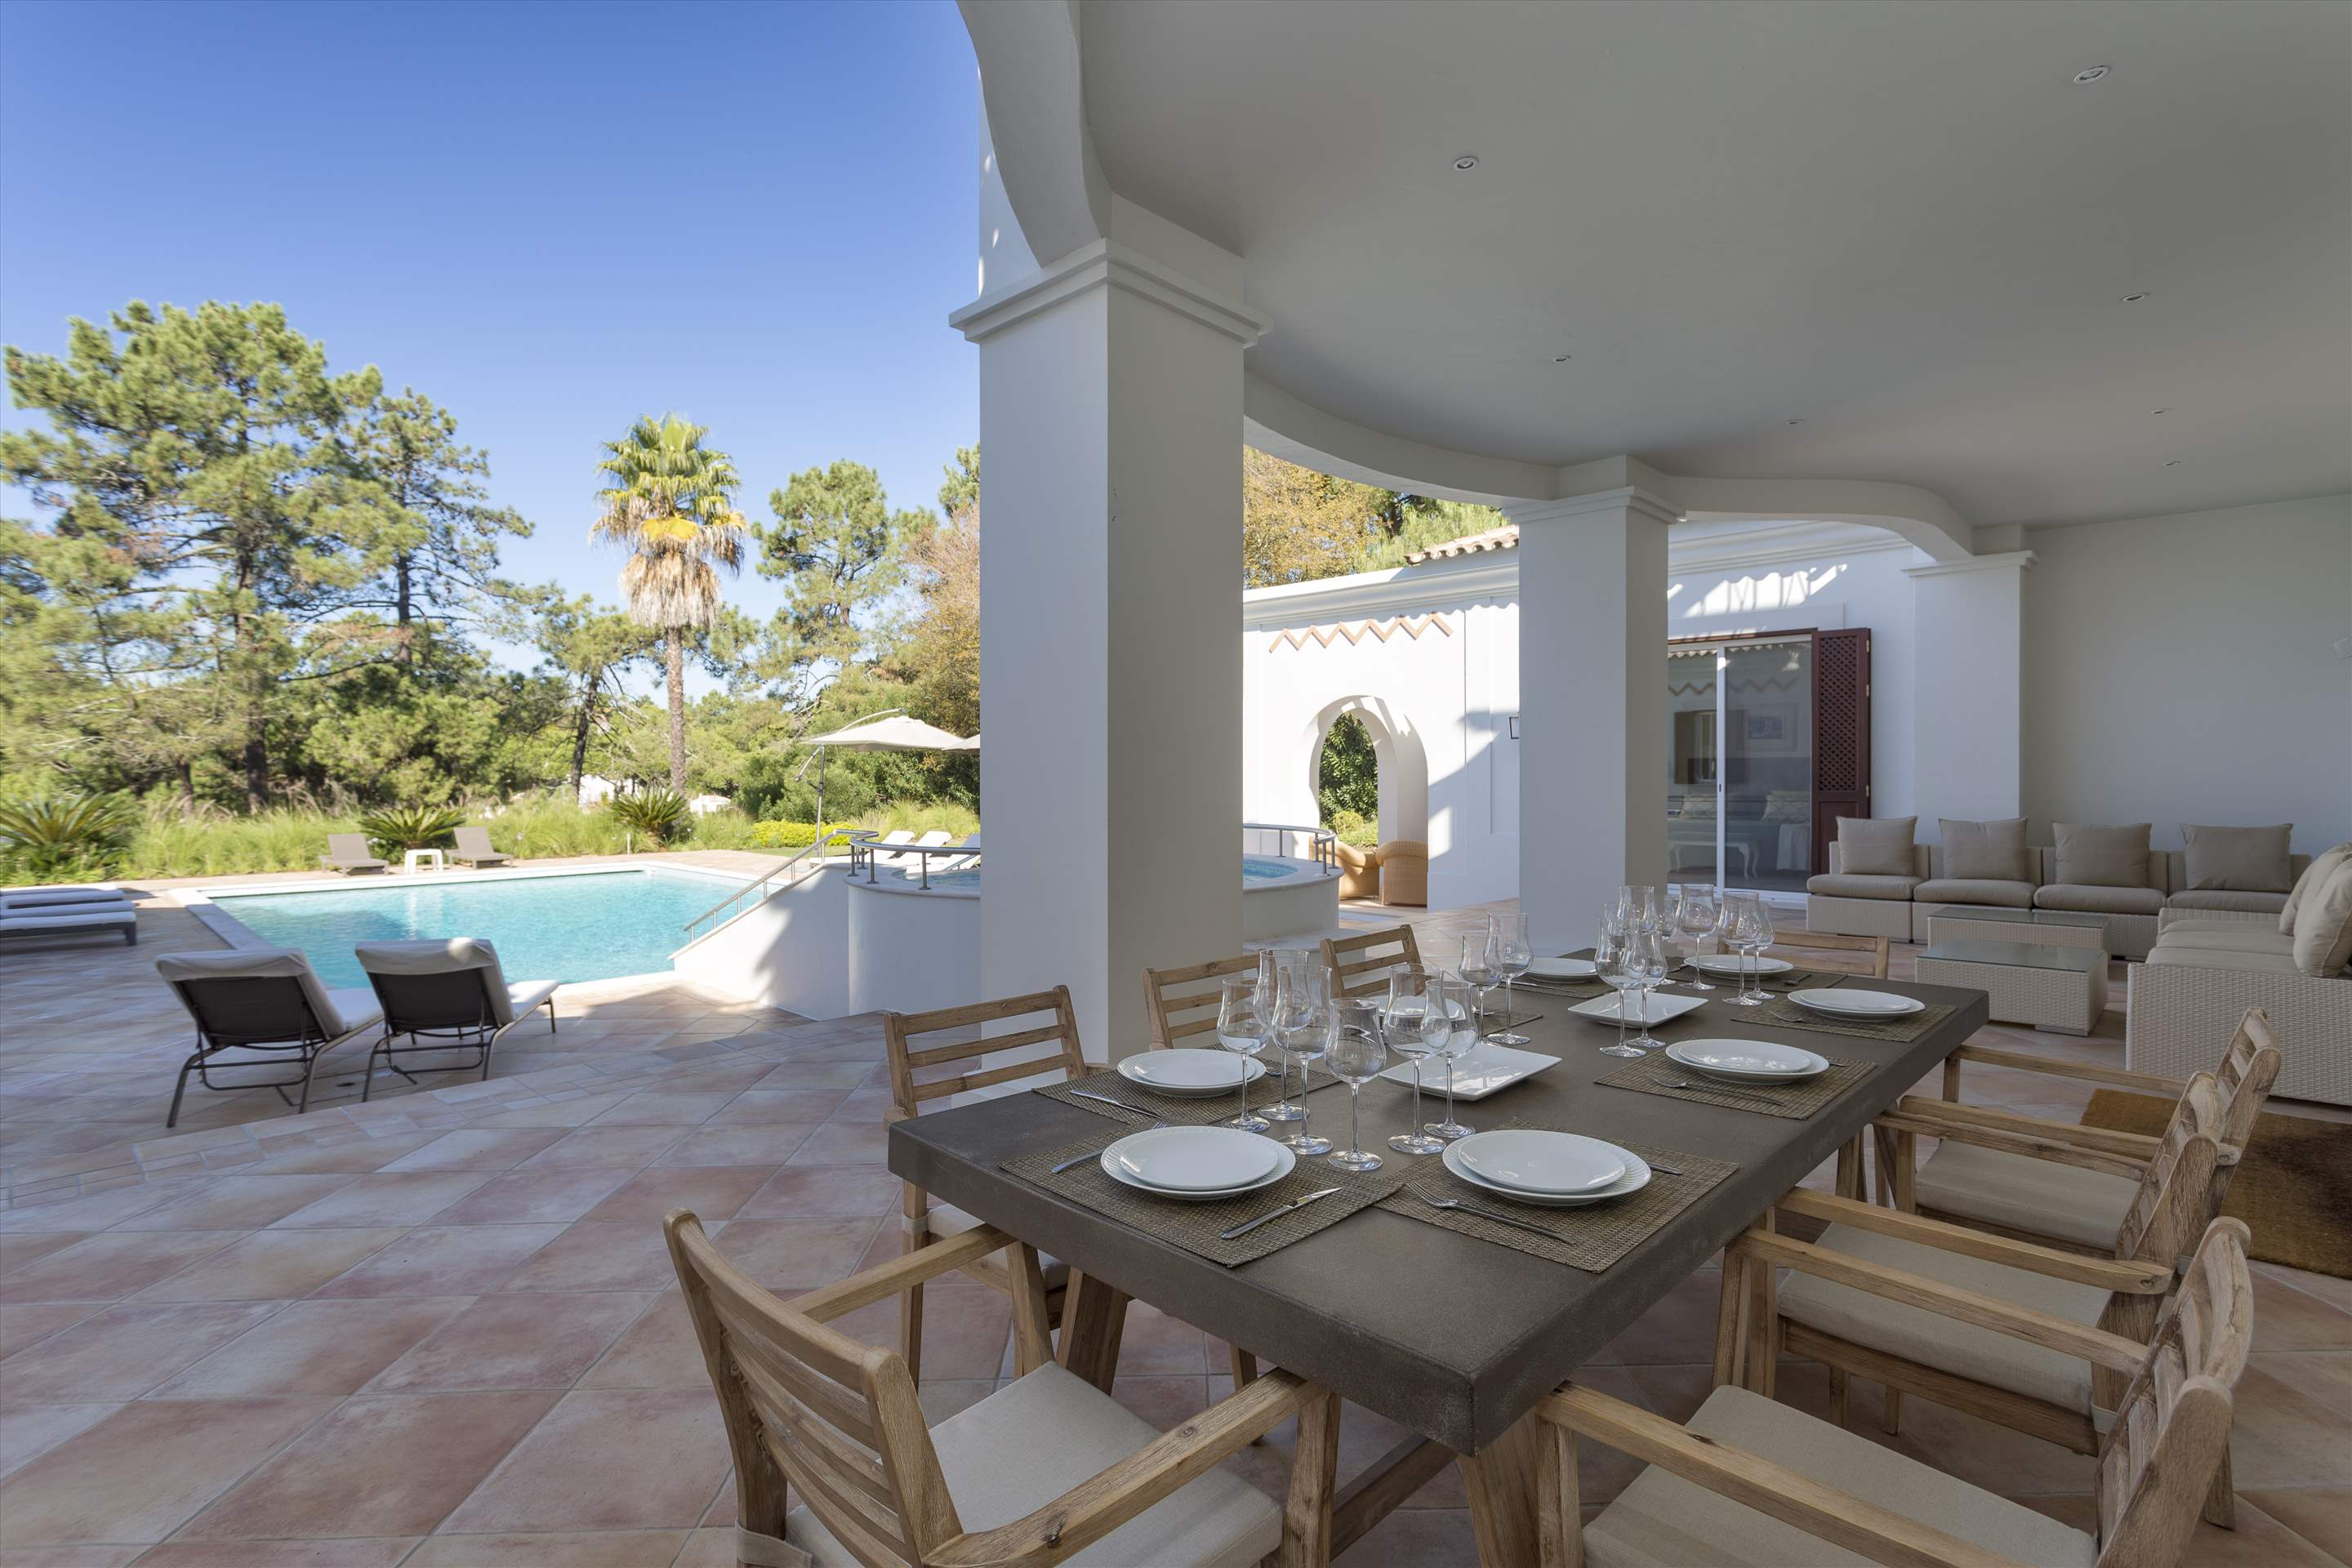 Villa Lantana 2, Main house & Annexe, 6 bedrooms, 6 bedroom villa in Quinta do Lago, Algarve Photo #2